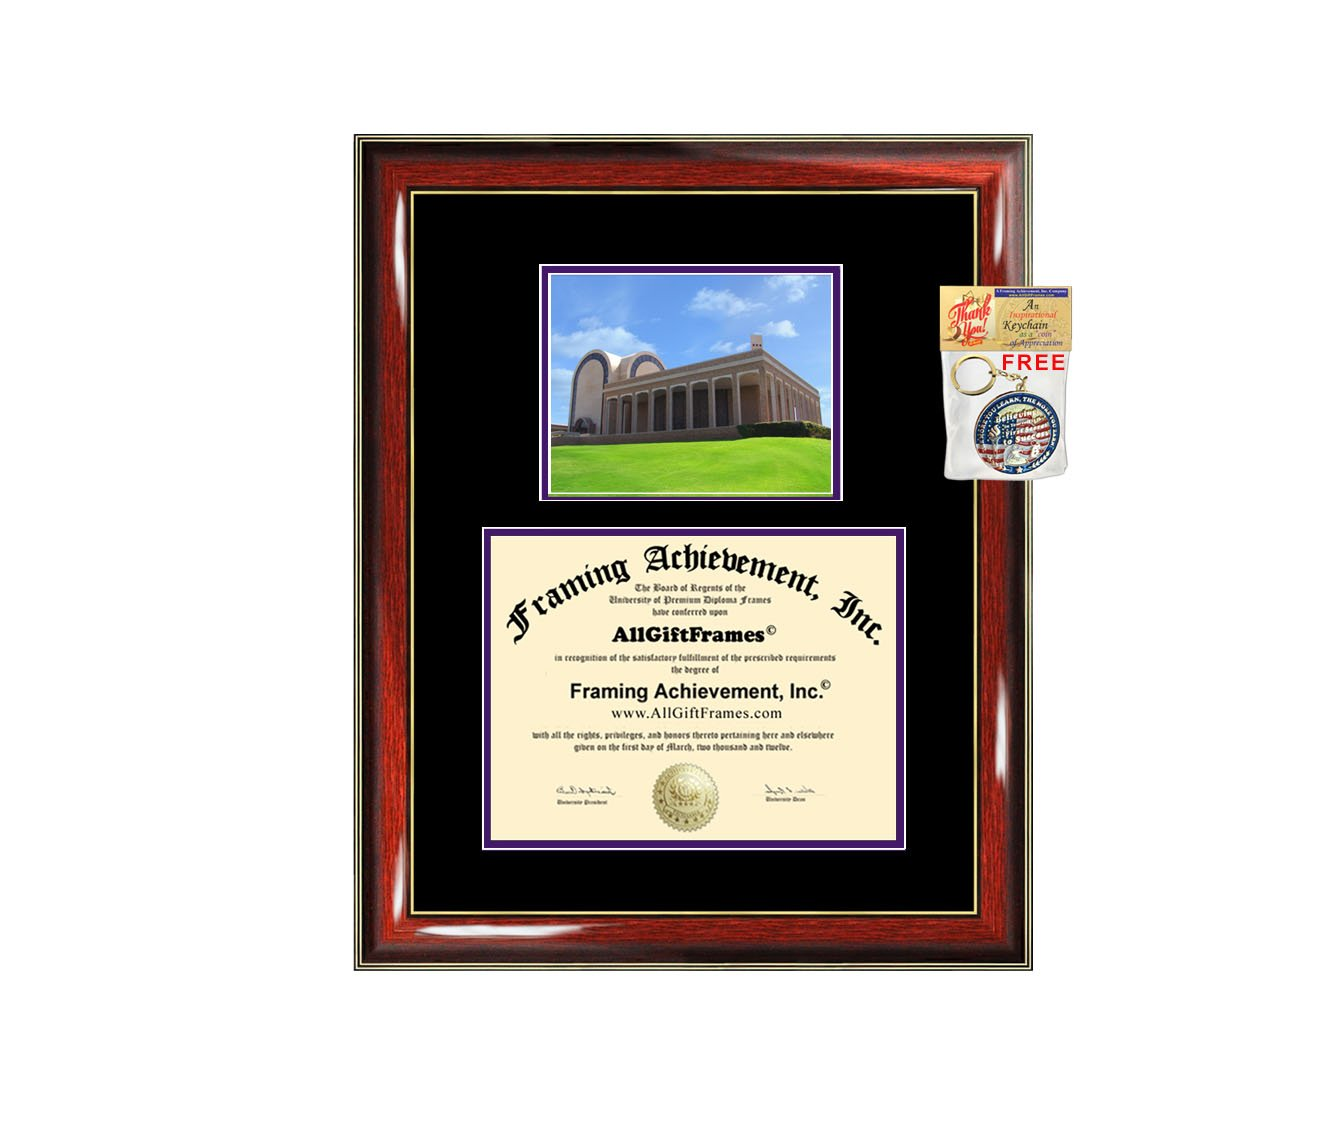 Abilene Christian University Diploma Frame ACU Graduation Degree Frame - Matted Campus College Photo Graduation Certificate Plaque Double Matting Framing Graduate Gift Document Case Holder by AllGiftFrames